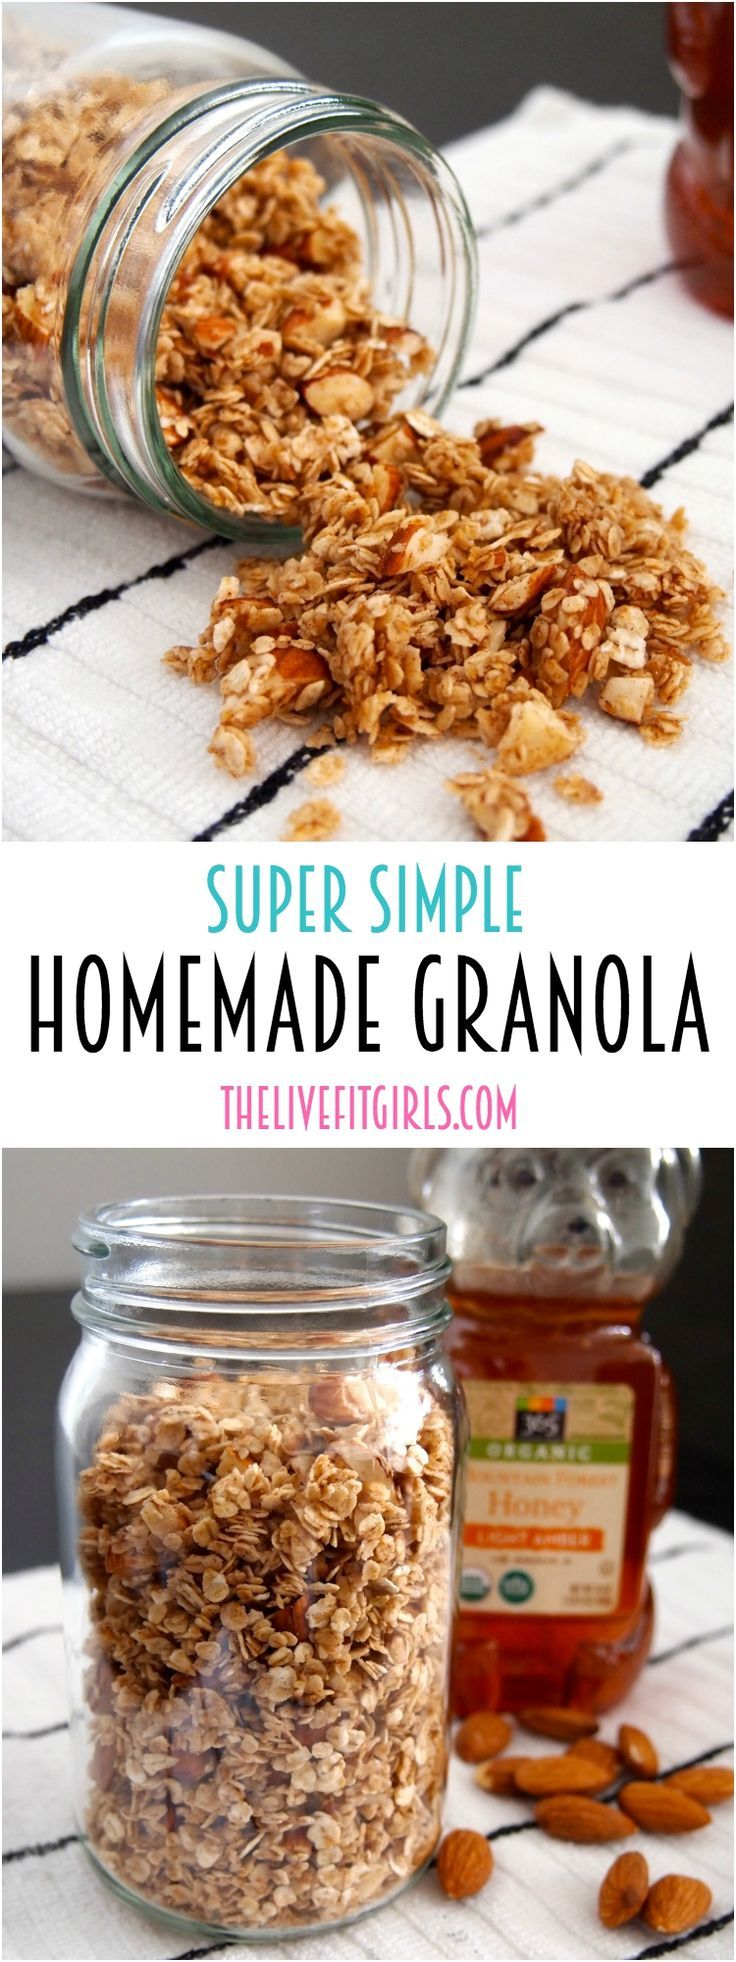 This homemade granola recipe is so easy and makes the perfect base for any granola recipe! It's amazing on parfaits or even as cereal @thelivefitgirl